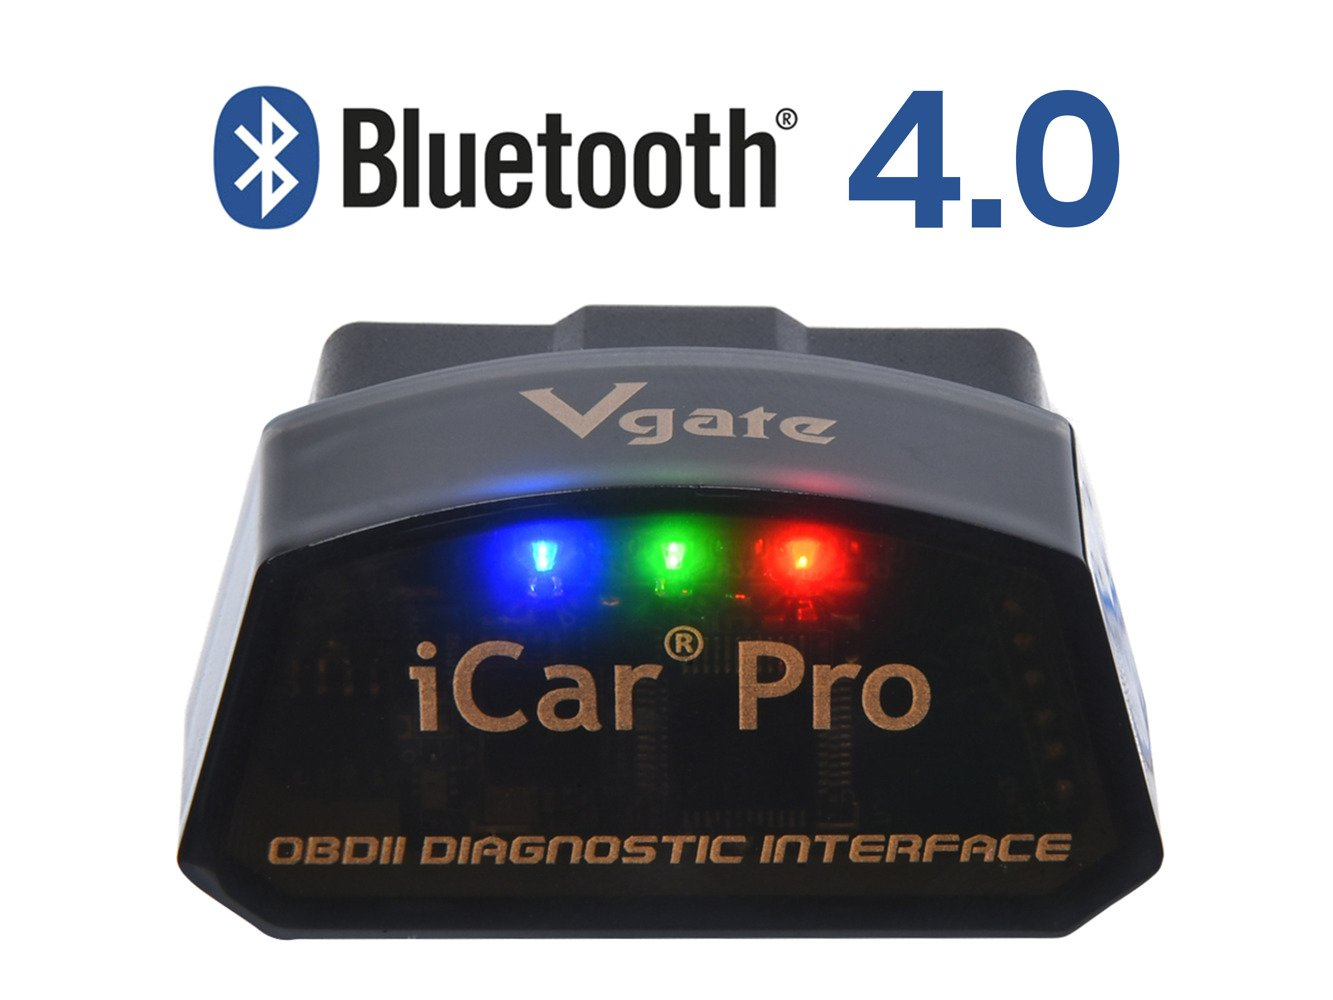 icar pro vgate bluetooth 4 0 id50 bluetooth 4 0 car. Black Bedroom Furniture Sets. Home Design Ideas